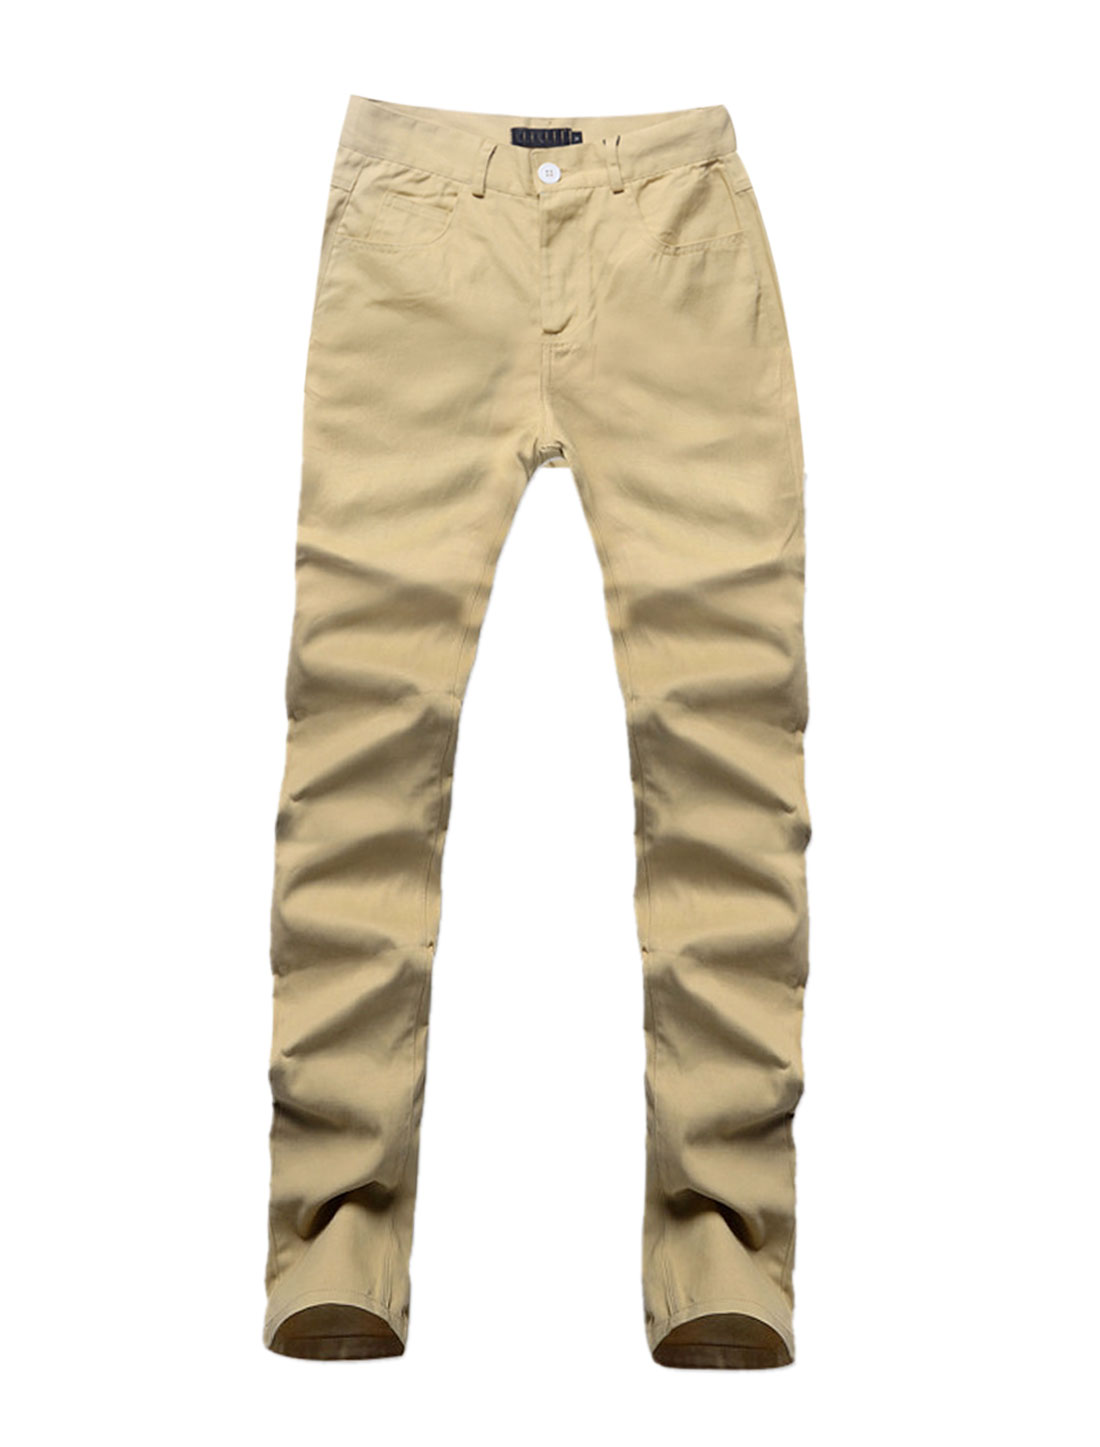 Men Waistband Loop Pockets Buttoned Closure Casual Pants Khaki W30